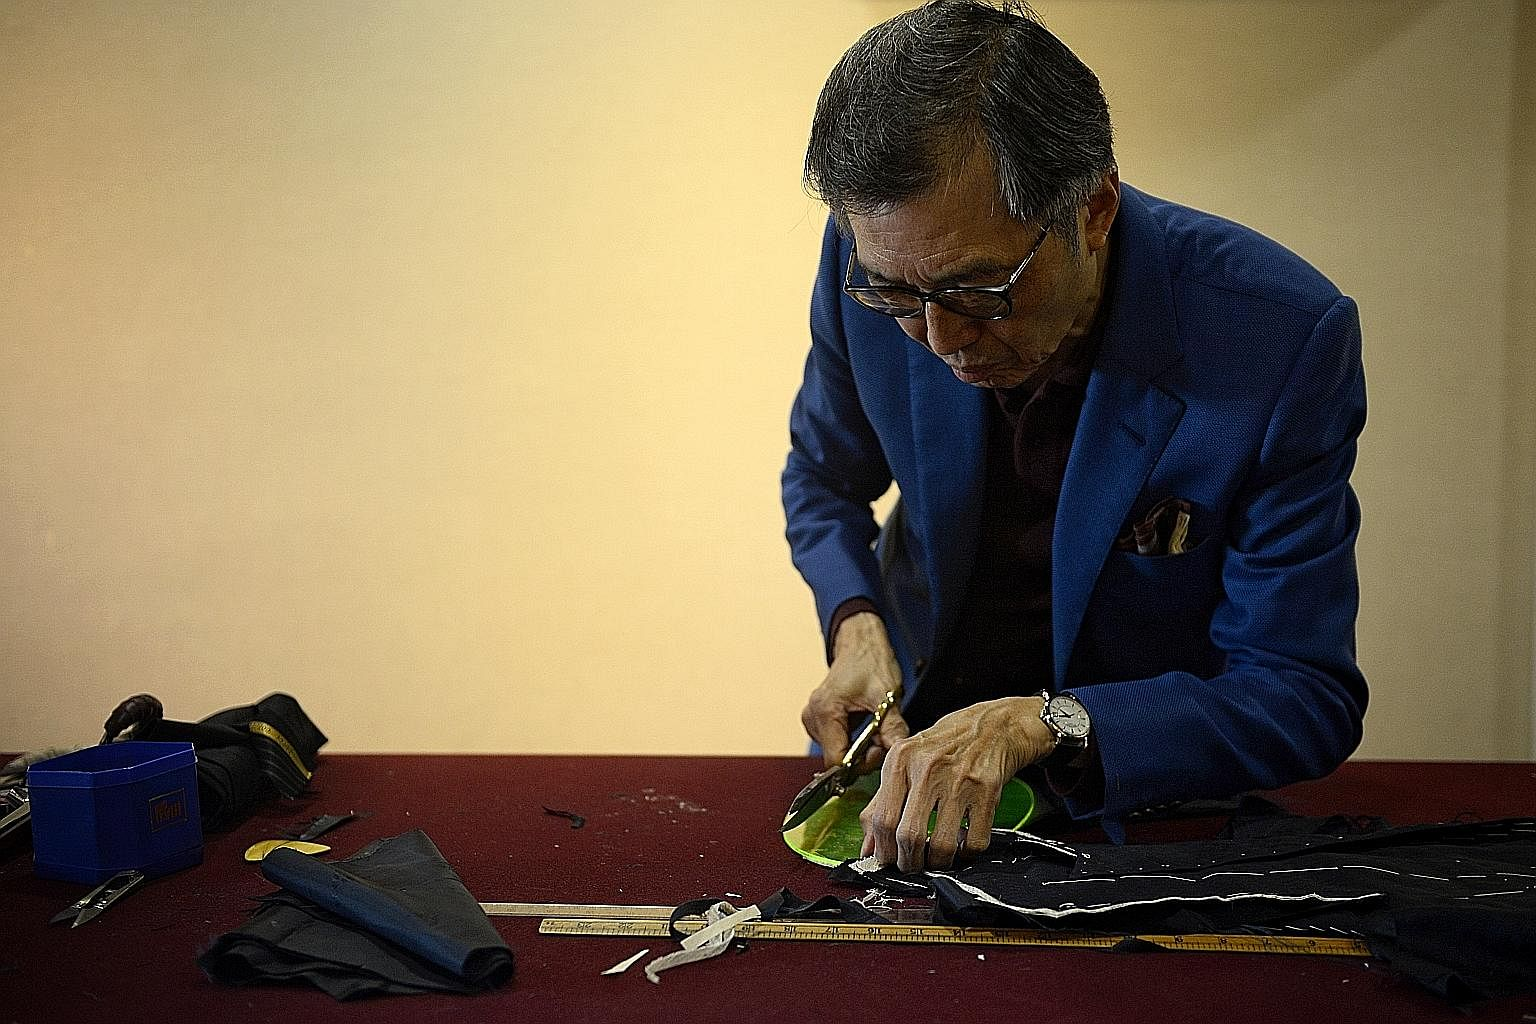 Mr Thomas Wong does not believe in cutting corners and strives for perfection.